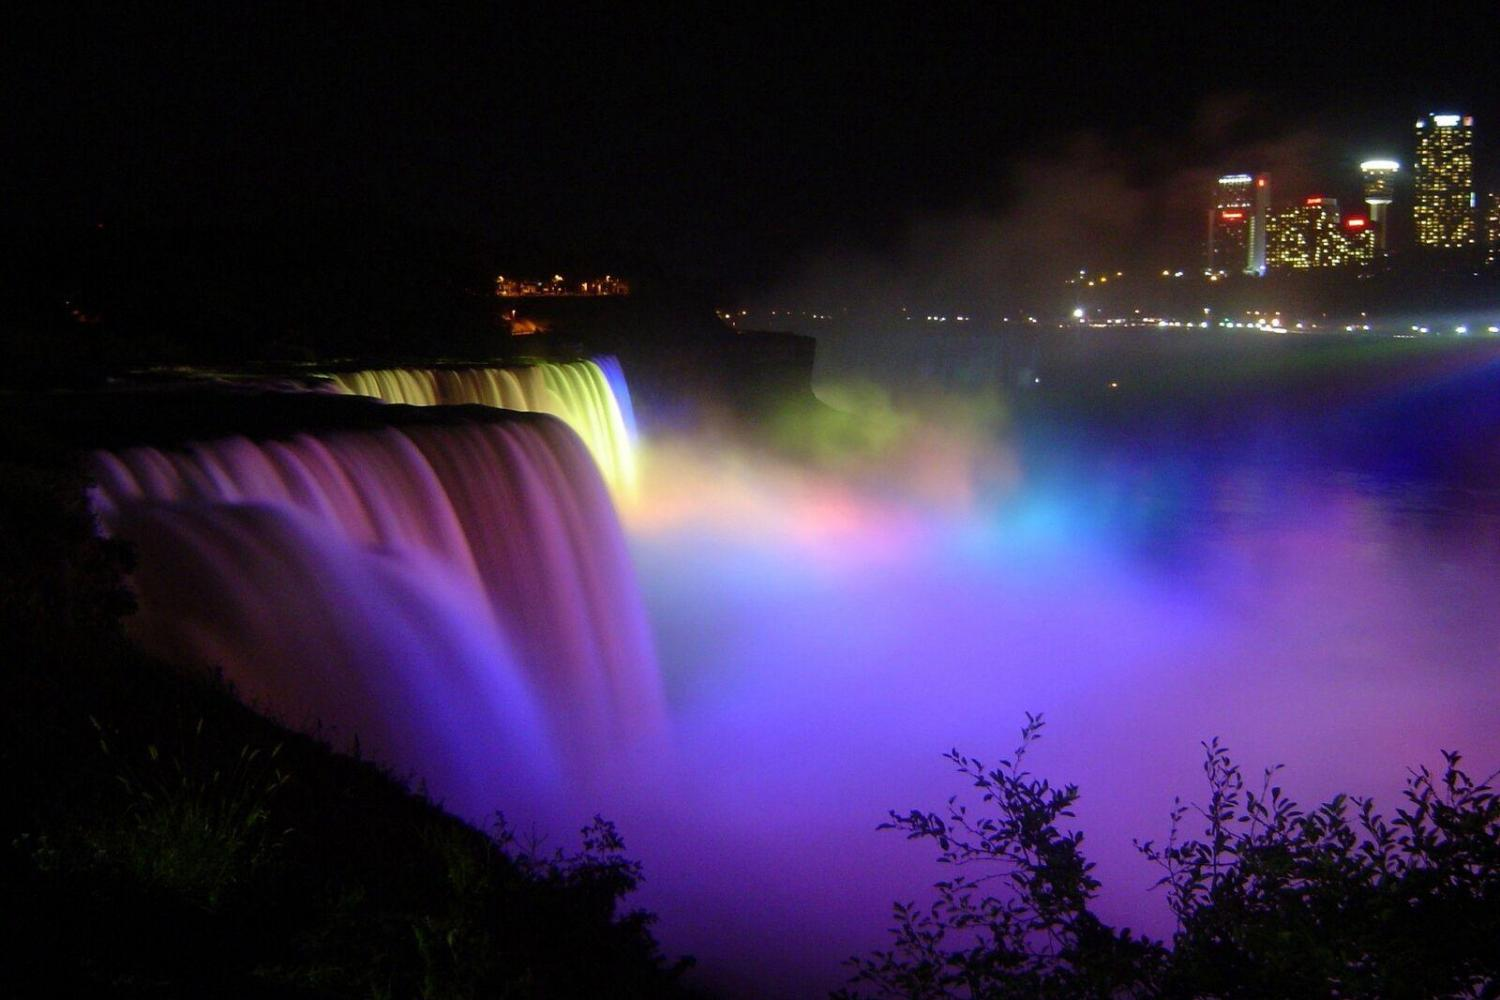 See the beautiful vibrant colors that light up the spectacular Niagara Falls!